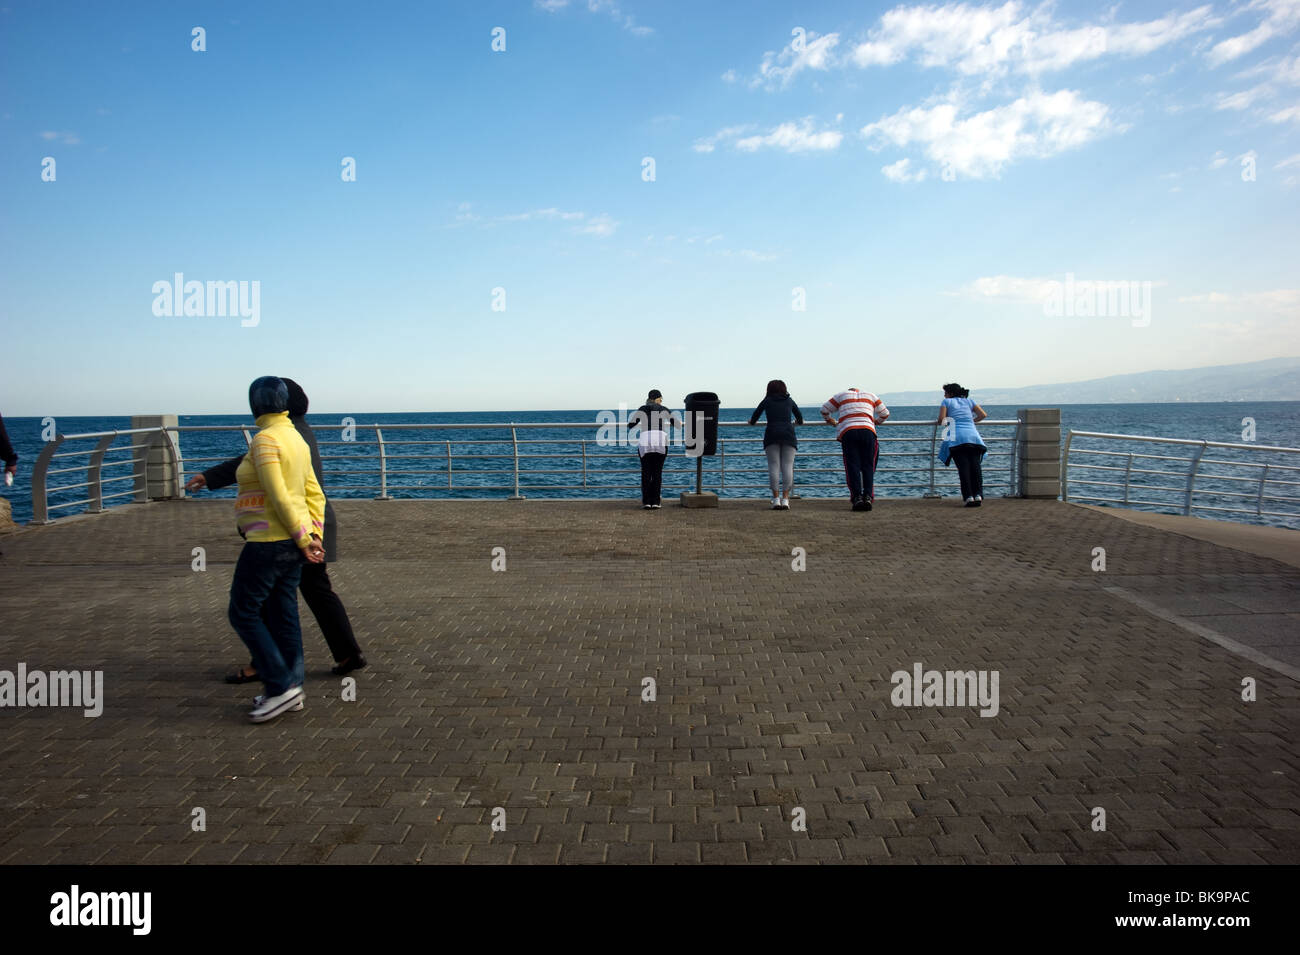 Beirut residents jogging and marching at Beirut cornice Lebanon - Stock Image